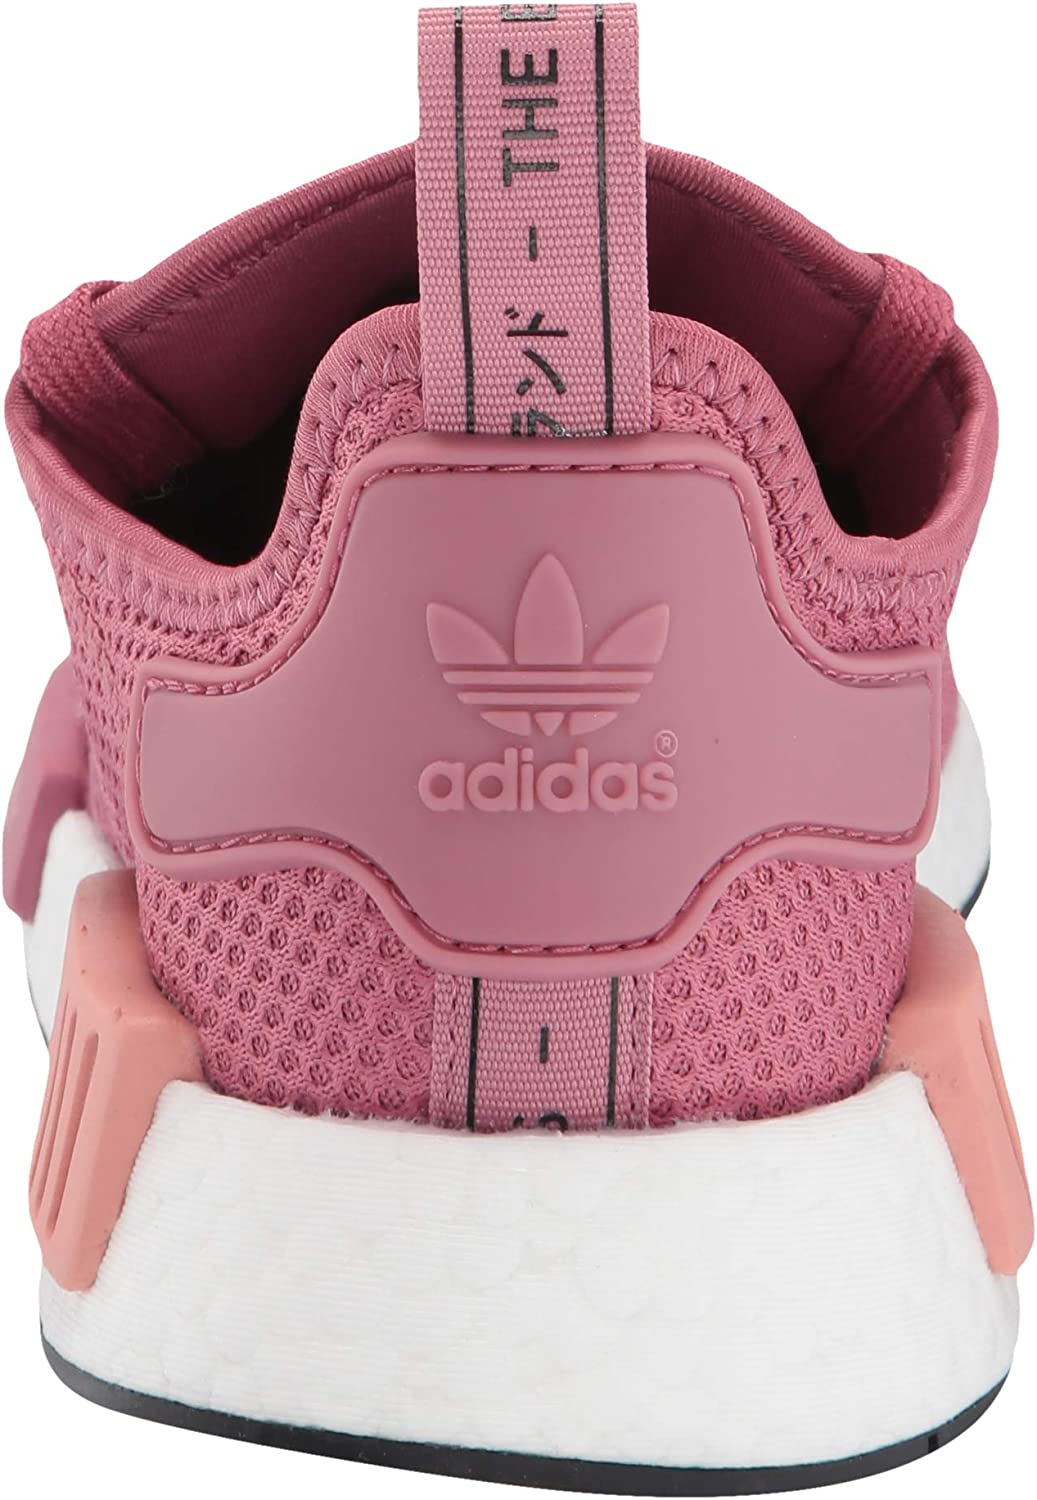 adidas NMD_r1 W, Chaussures de Gymnastique Femme Trace Maroon Trace Maroon Trace Pink